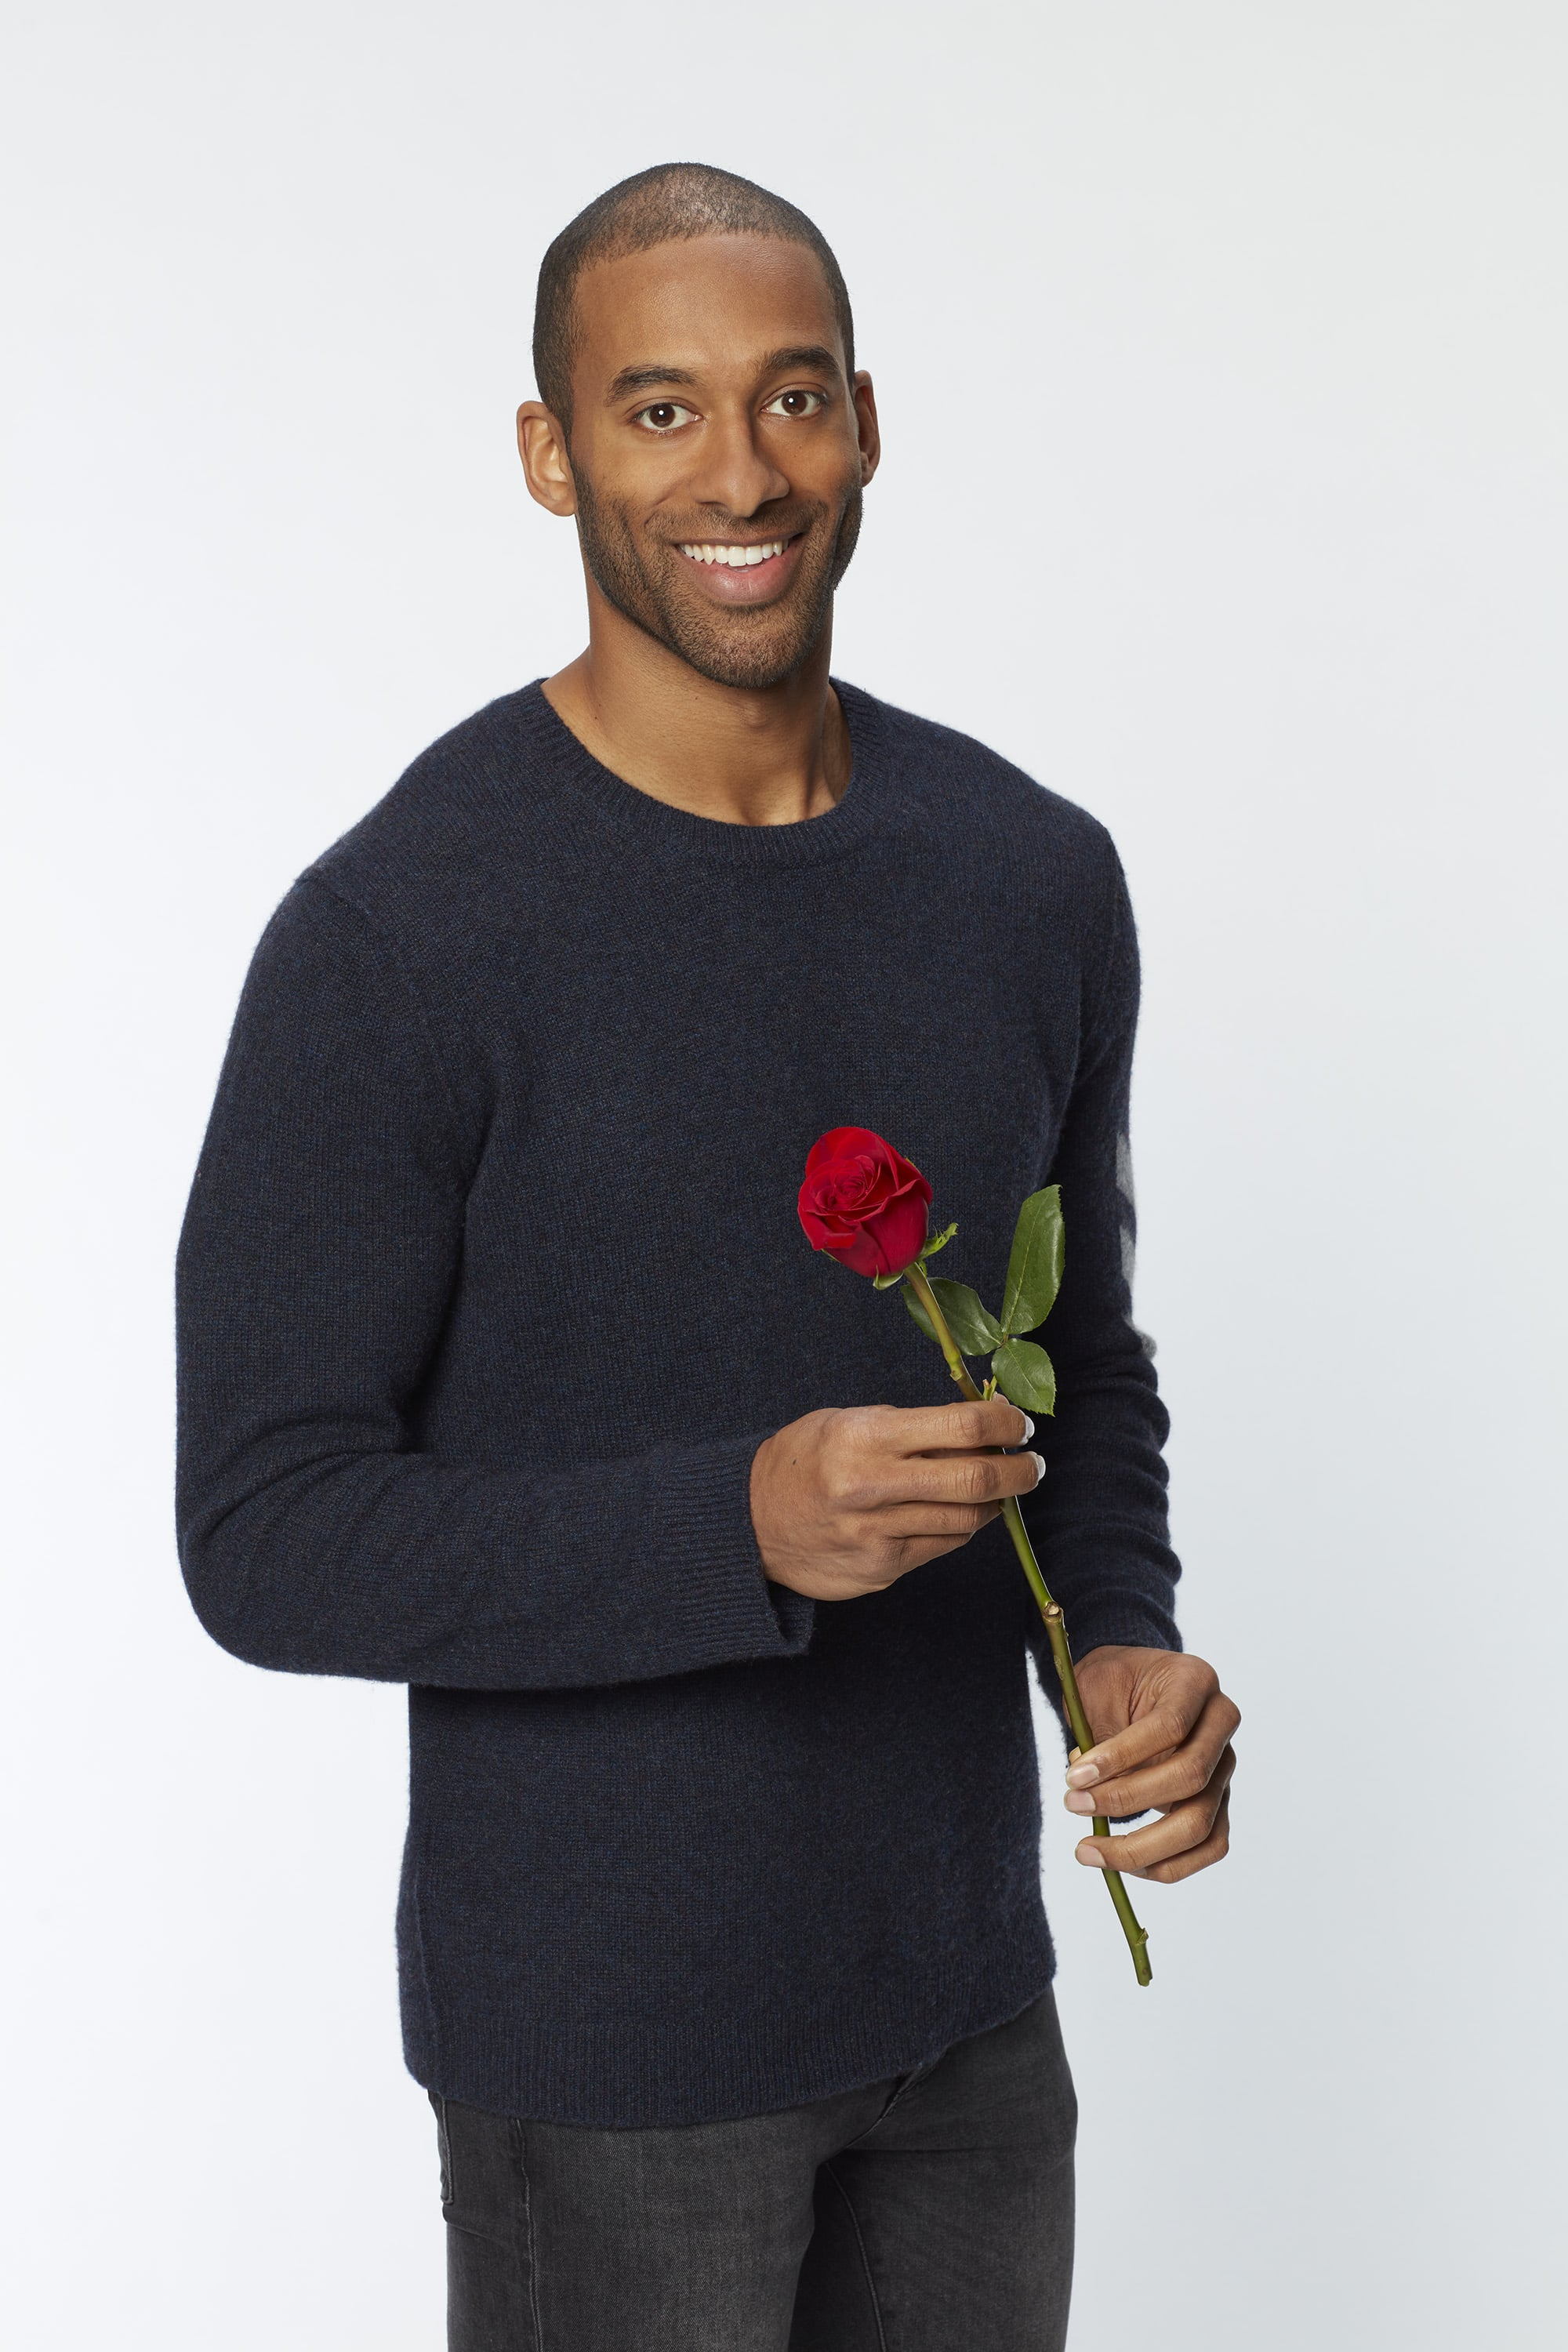 THE BACHELOR - After meeting Matt James as a prospective suitor for